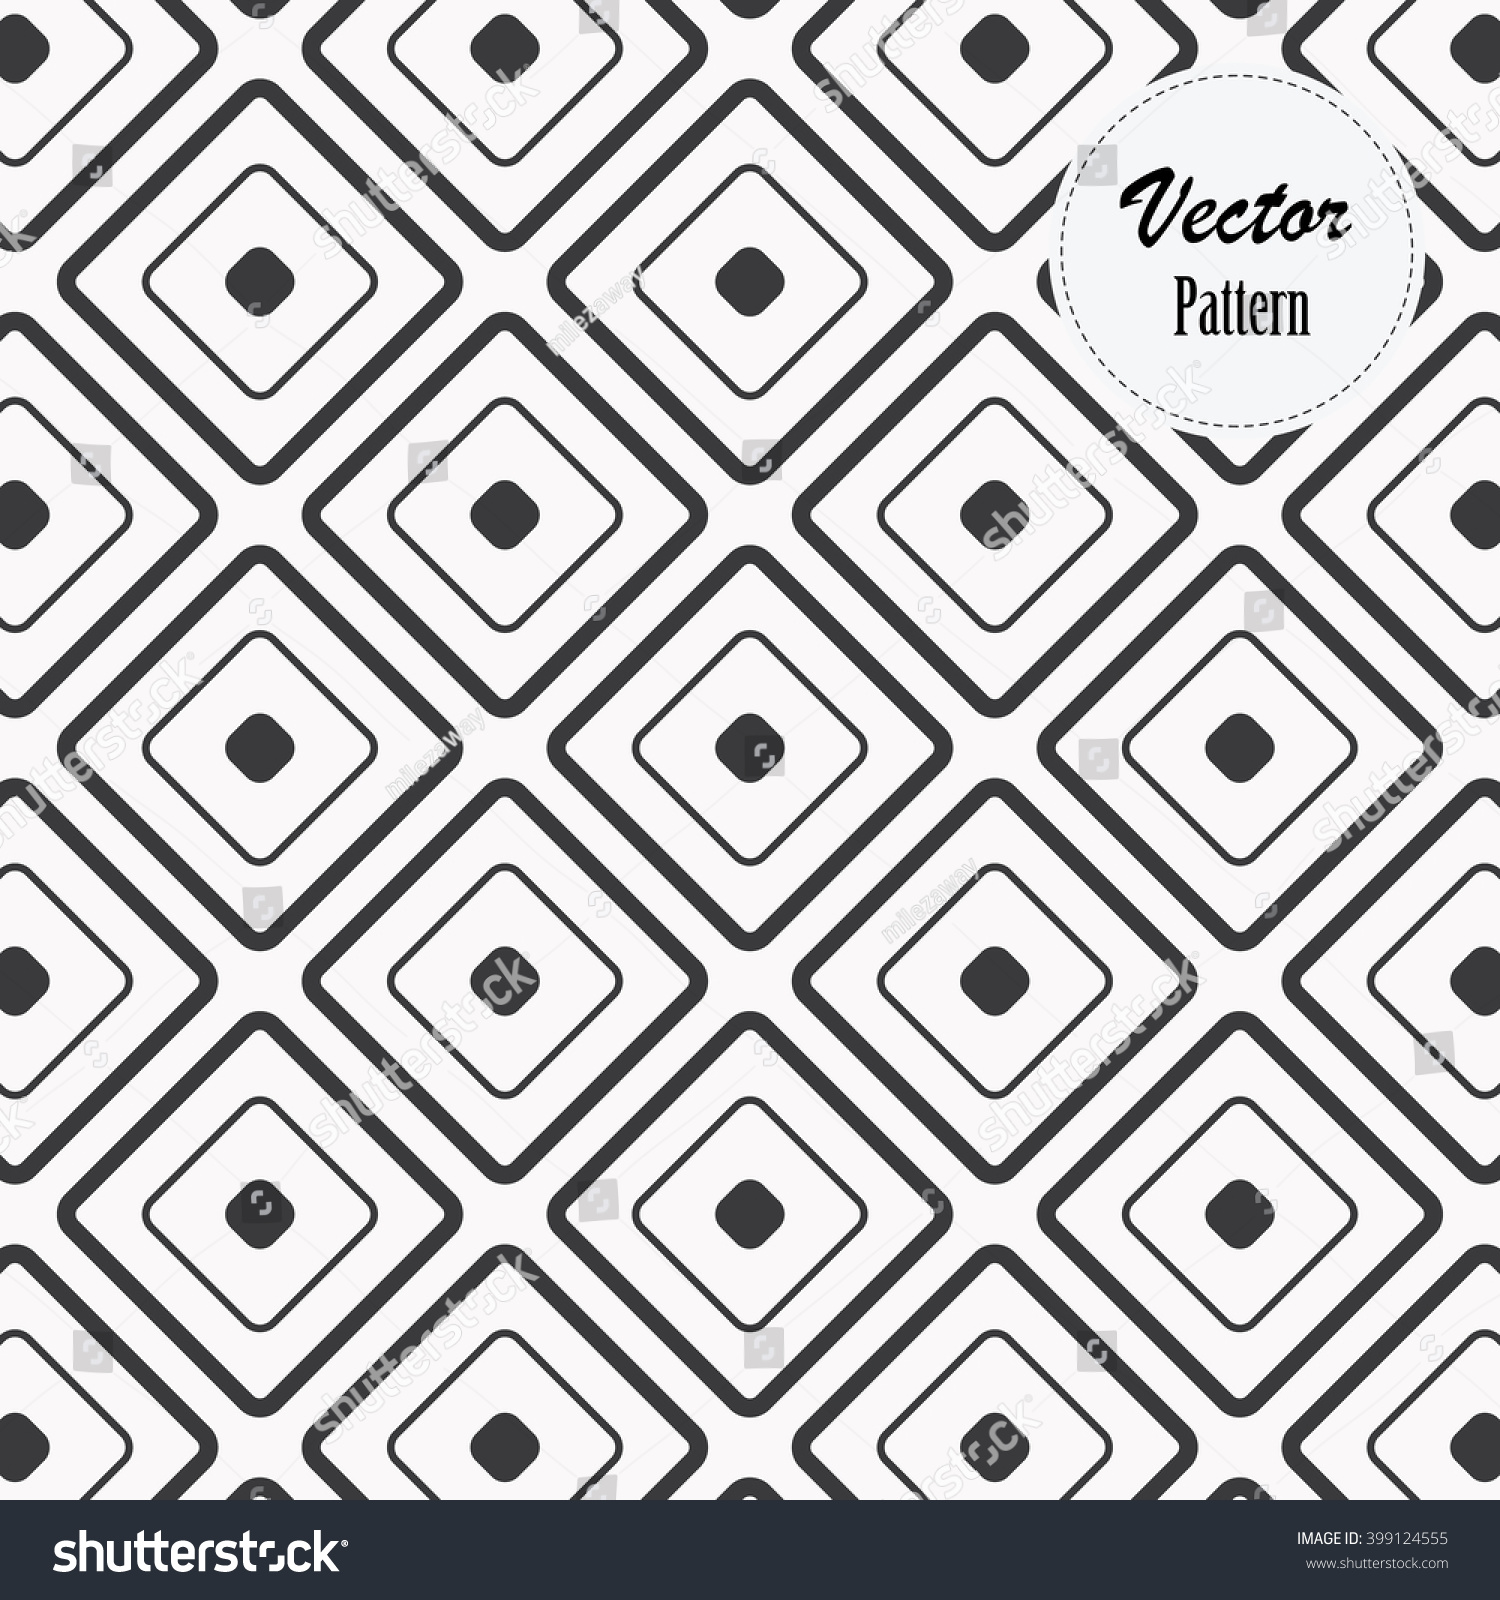 pattern stock glowing rounded diamond photo background vector seamless image